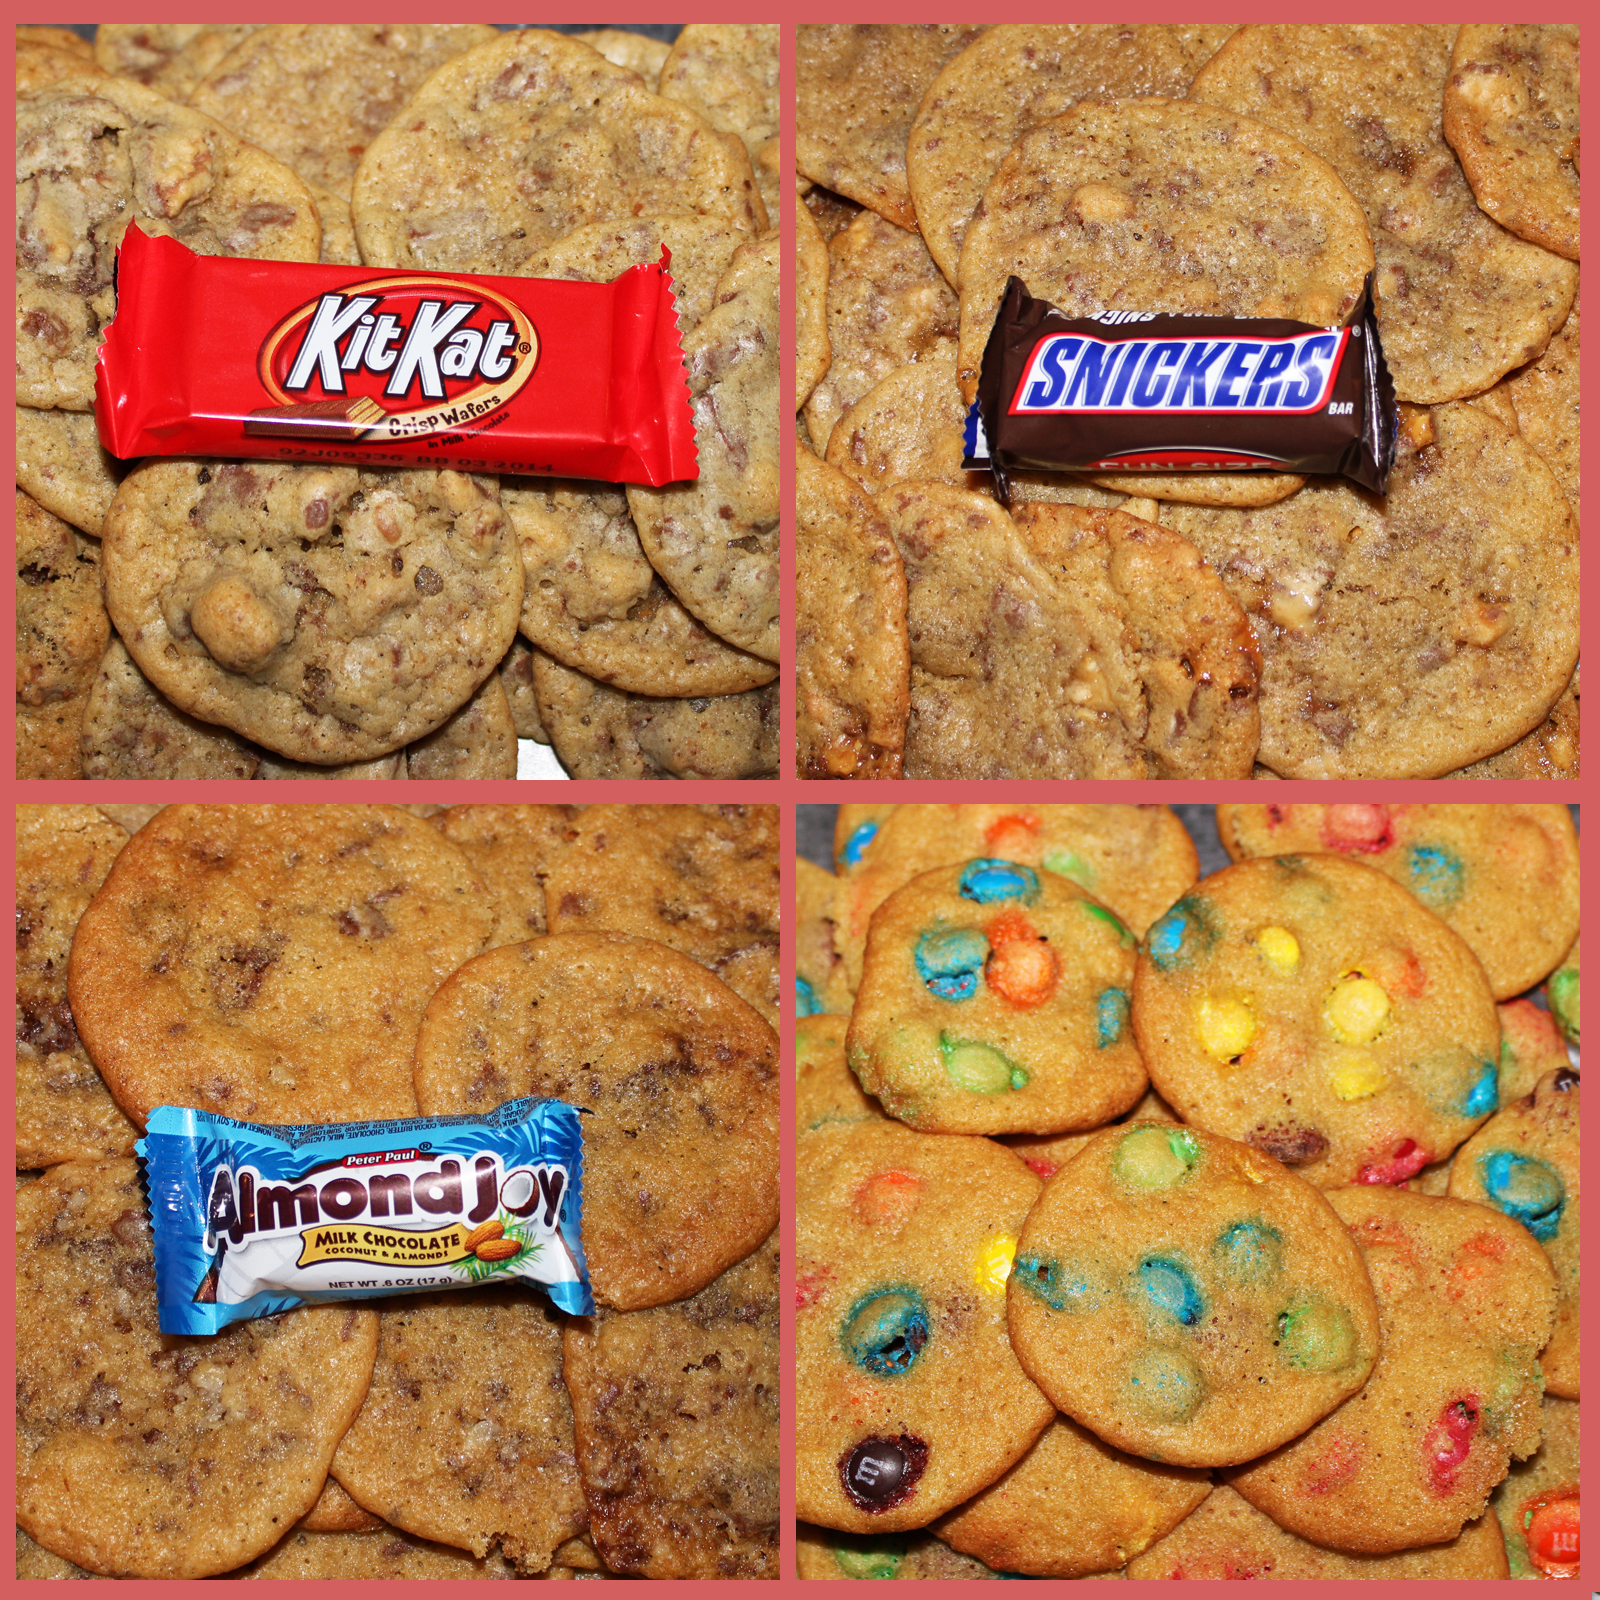 ... candy or a cookie? Candy? Cookie? Candy? Cookie? Candy? Cookie? Oh